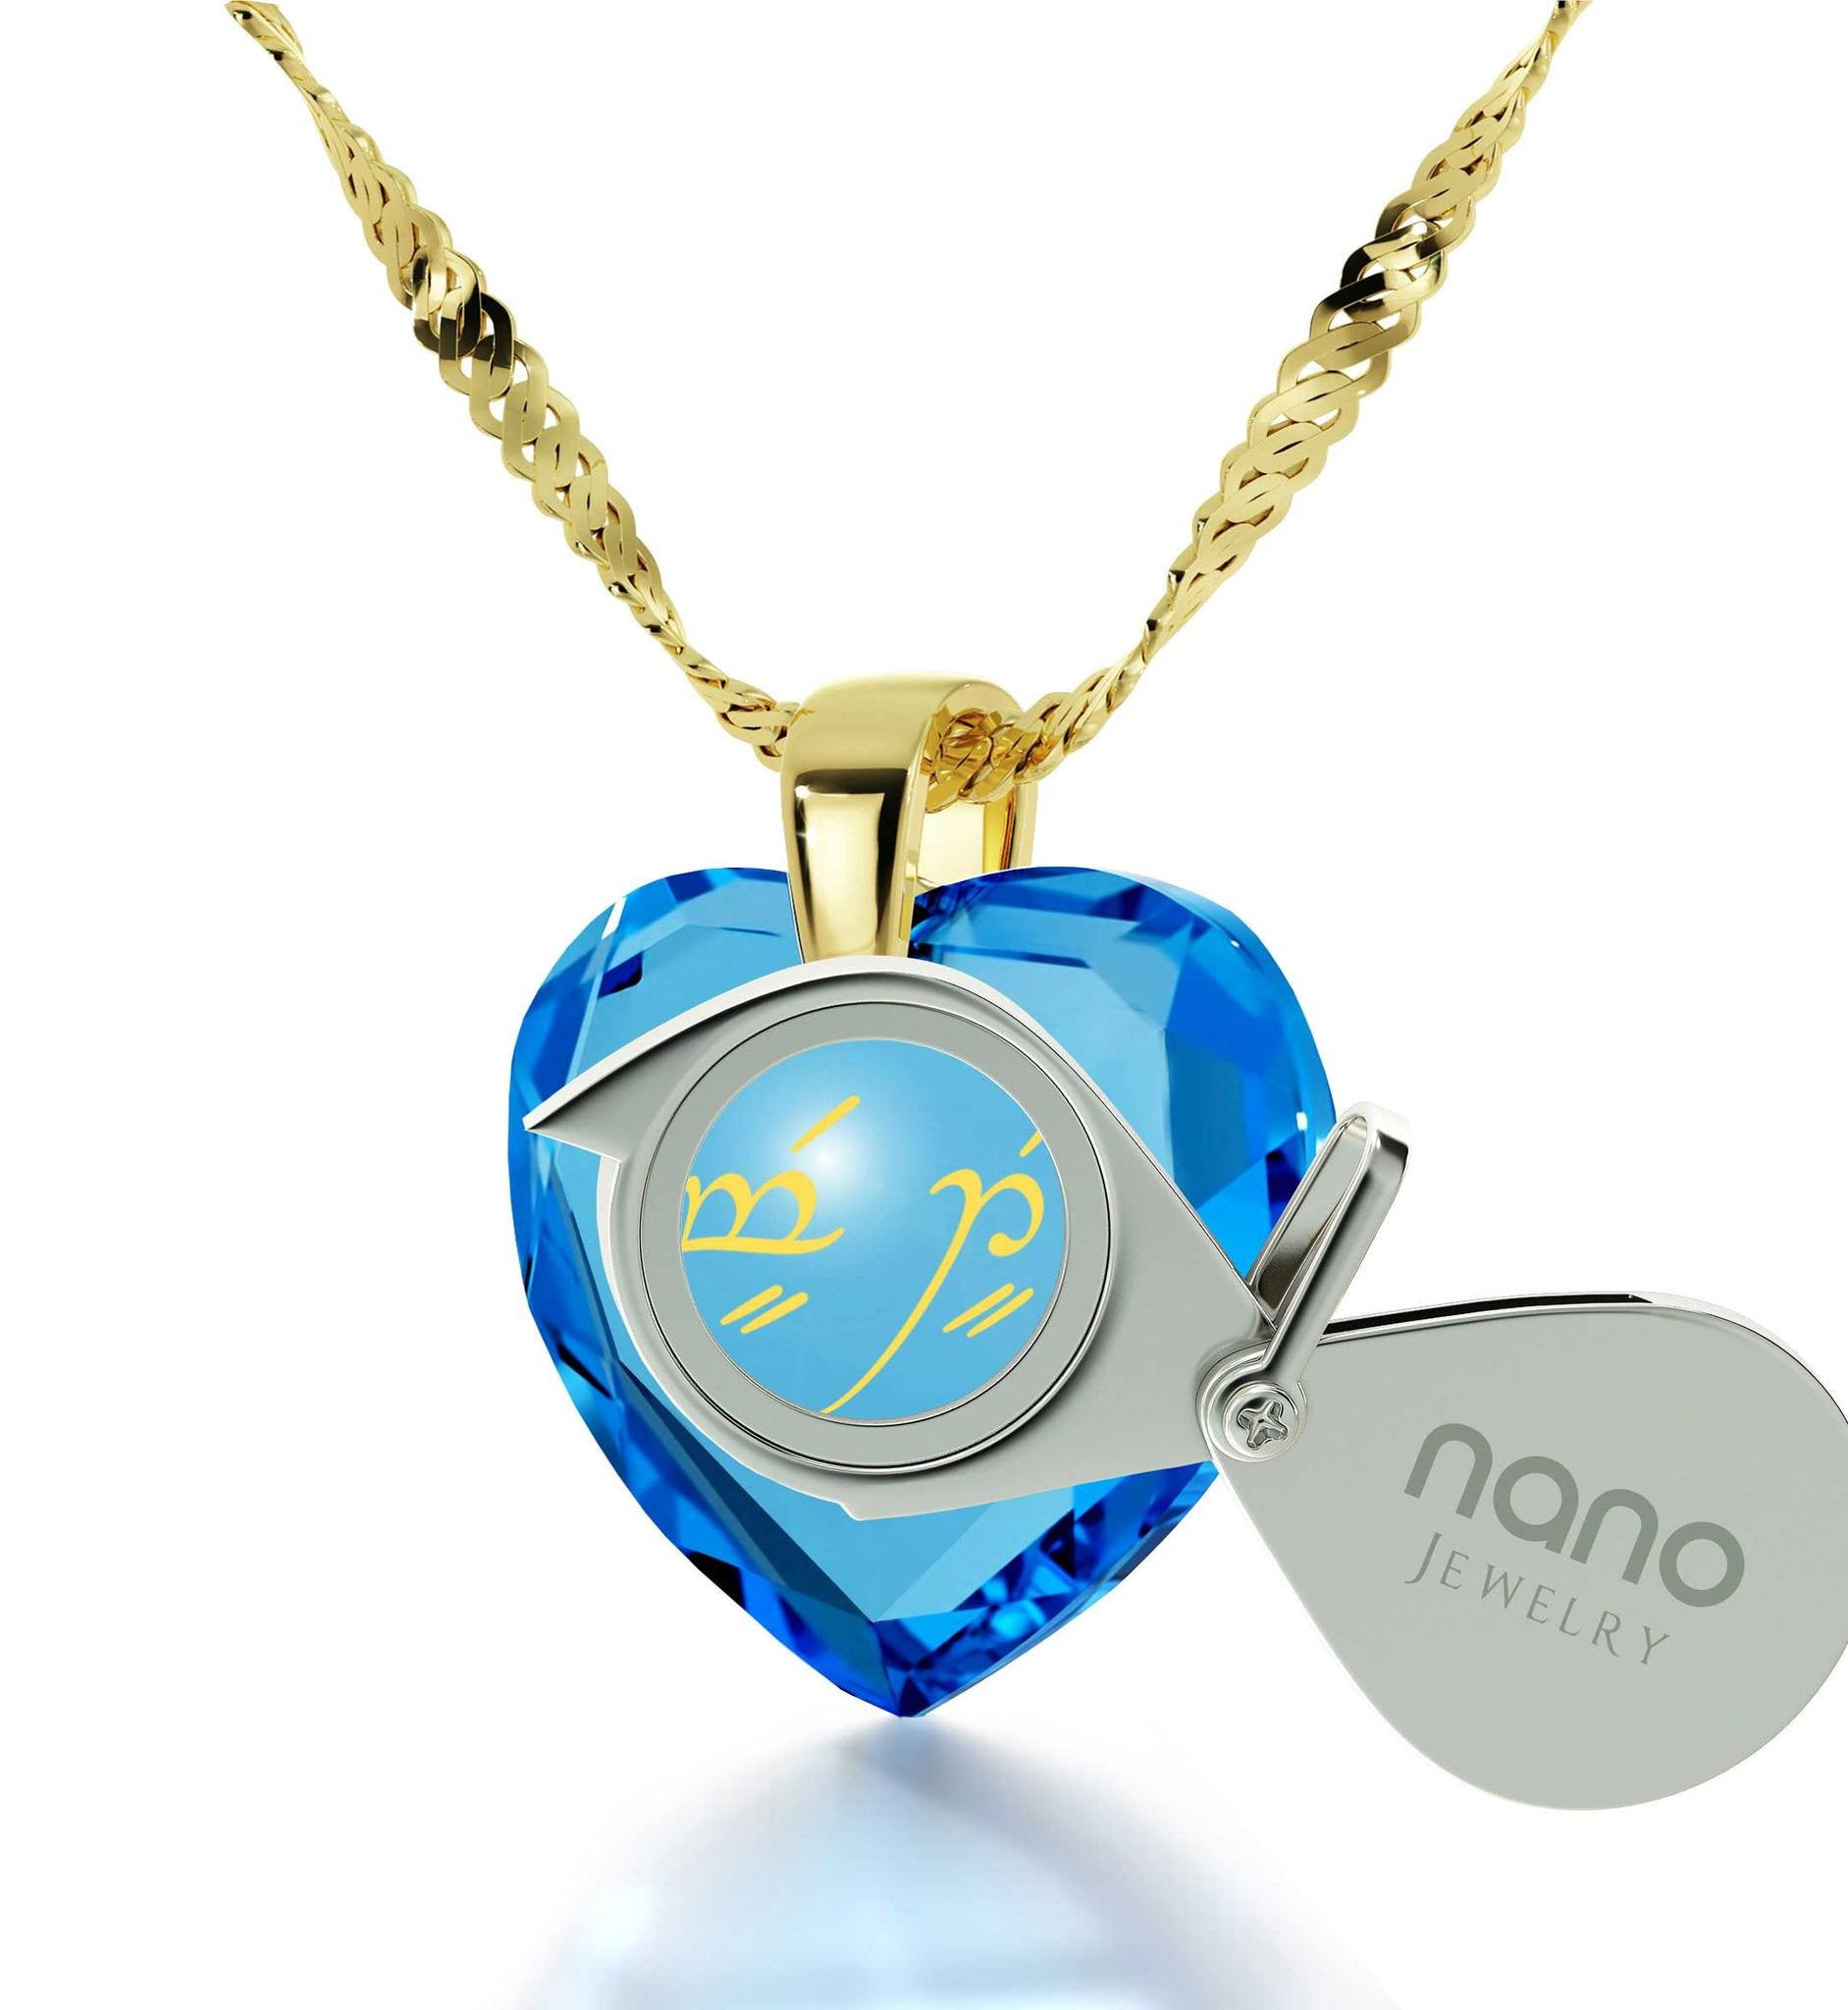 "Valentines Presents for Her,Elvish Language for ""I Love You"", Meaningful Necklaces, Nano Jewelry"